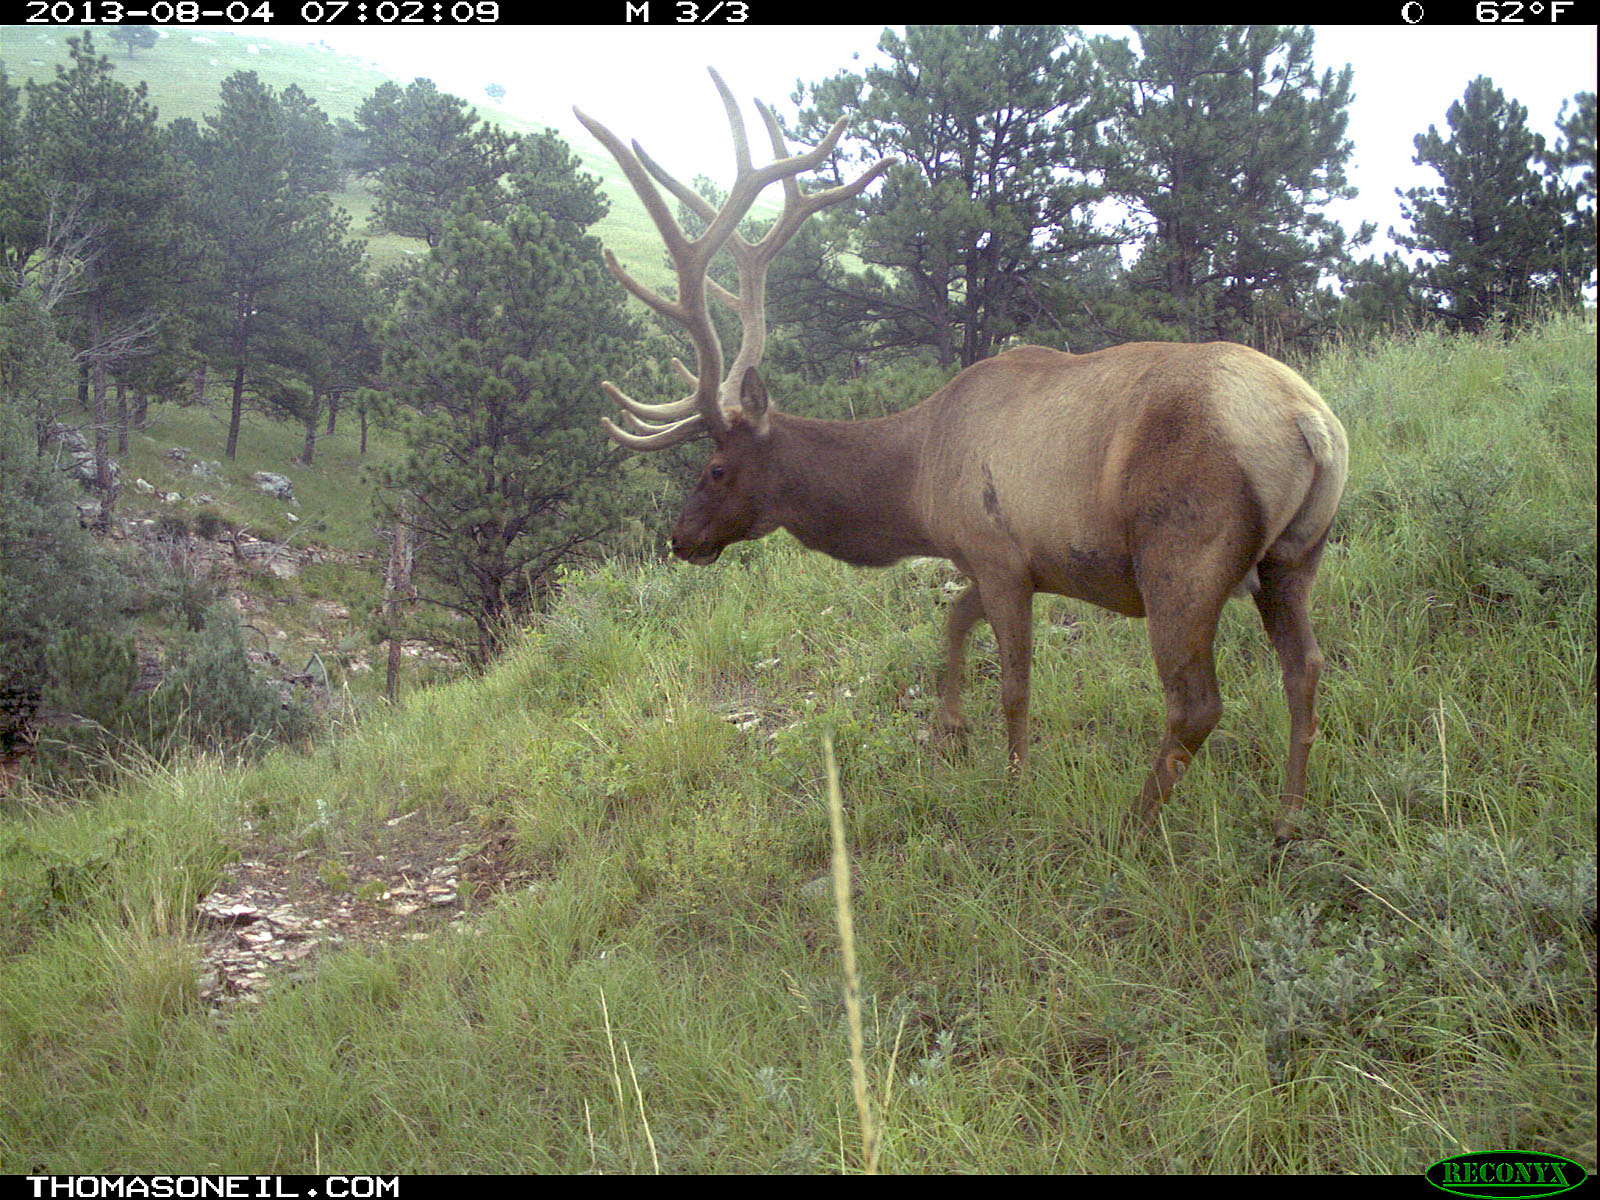 Elk on trail camera, Wind Cave National Park, South Dakota, August 8, 2013.  Click for next photo.